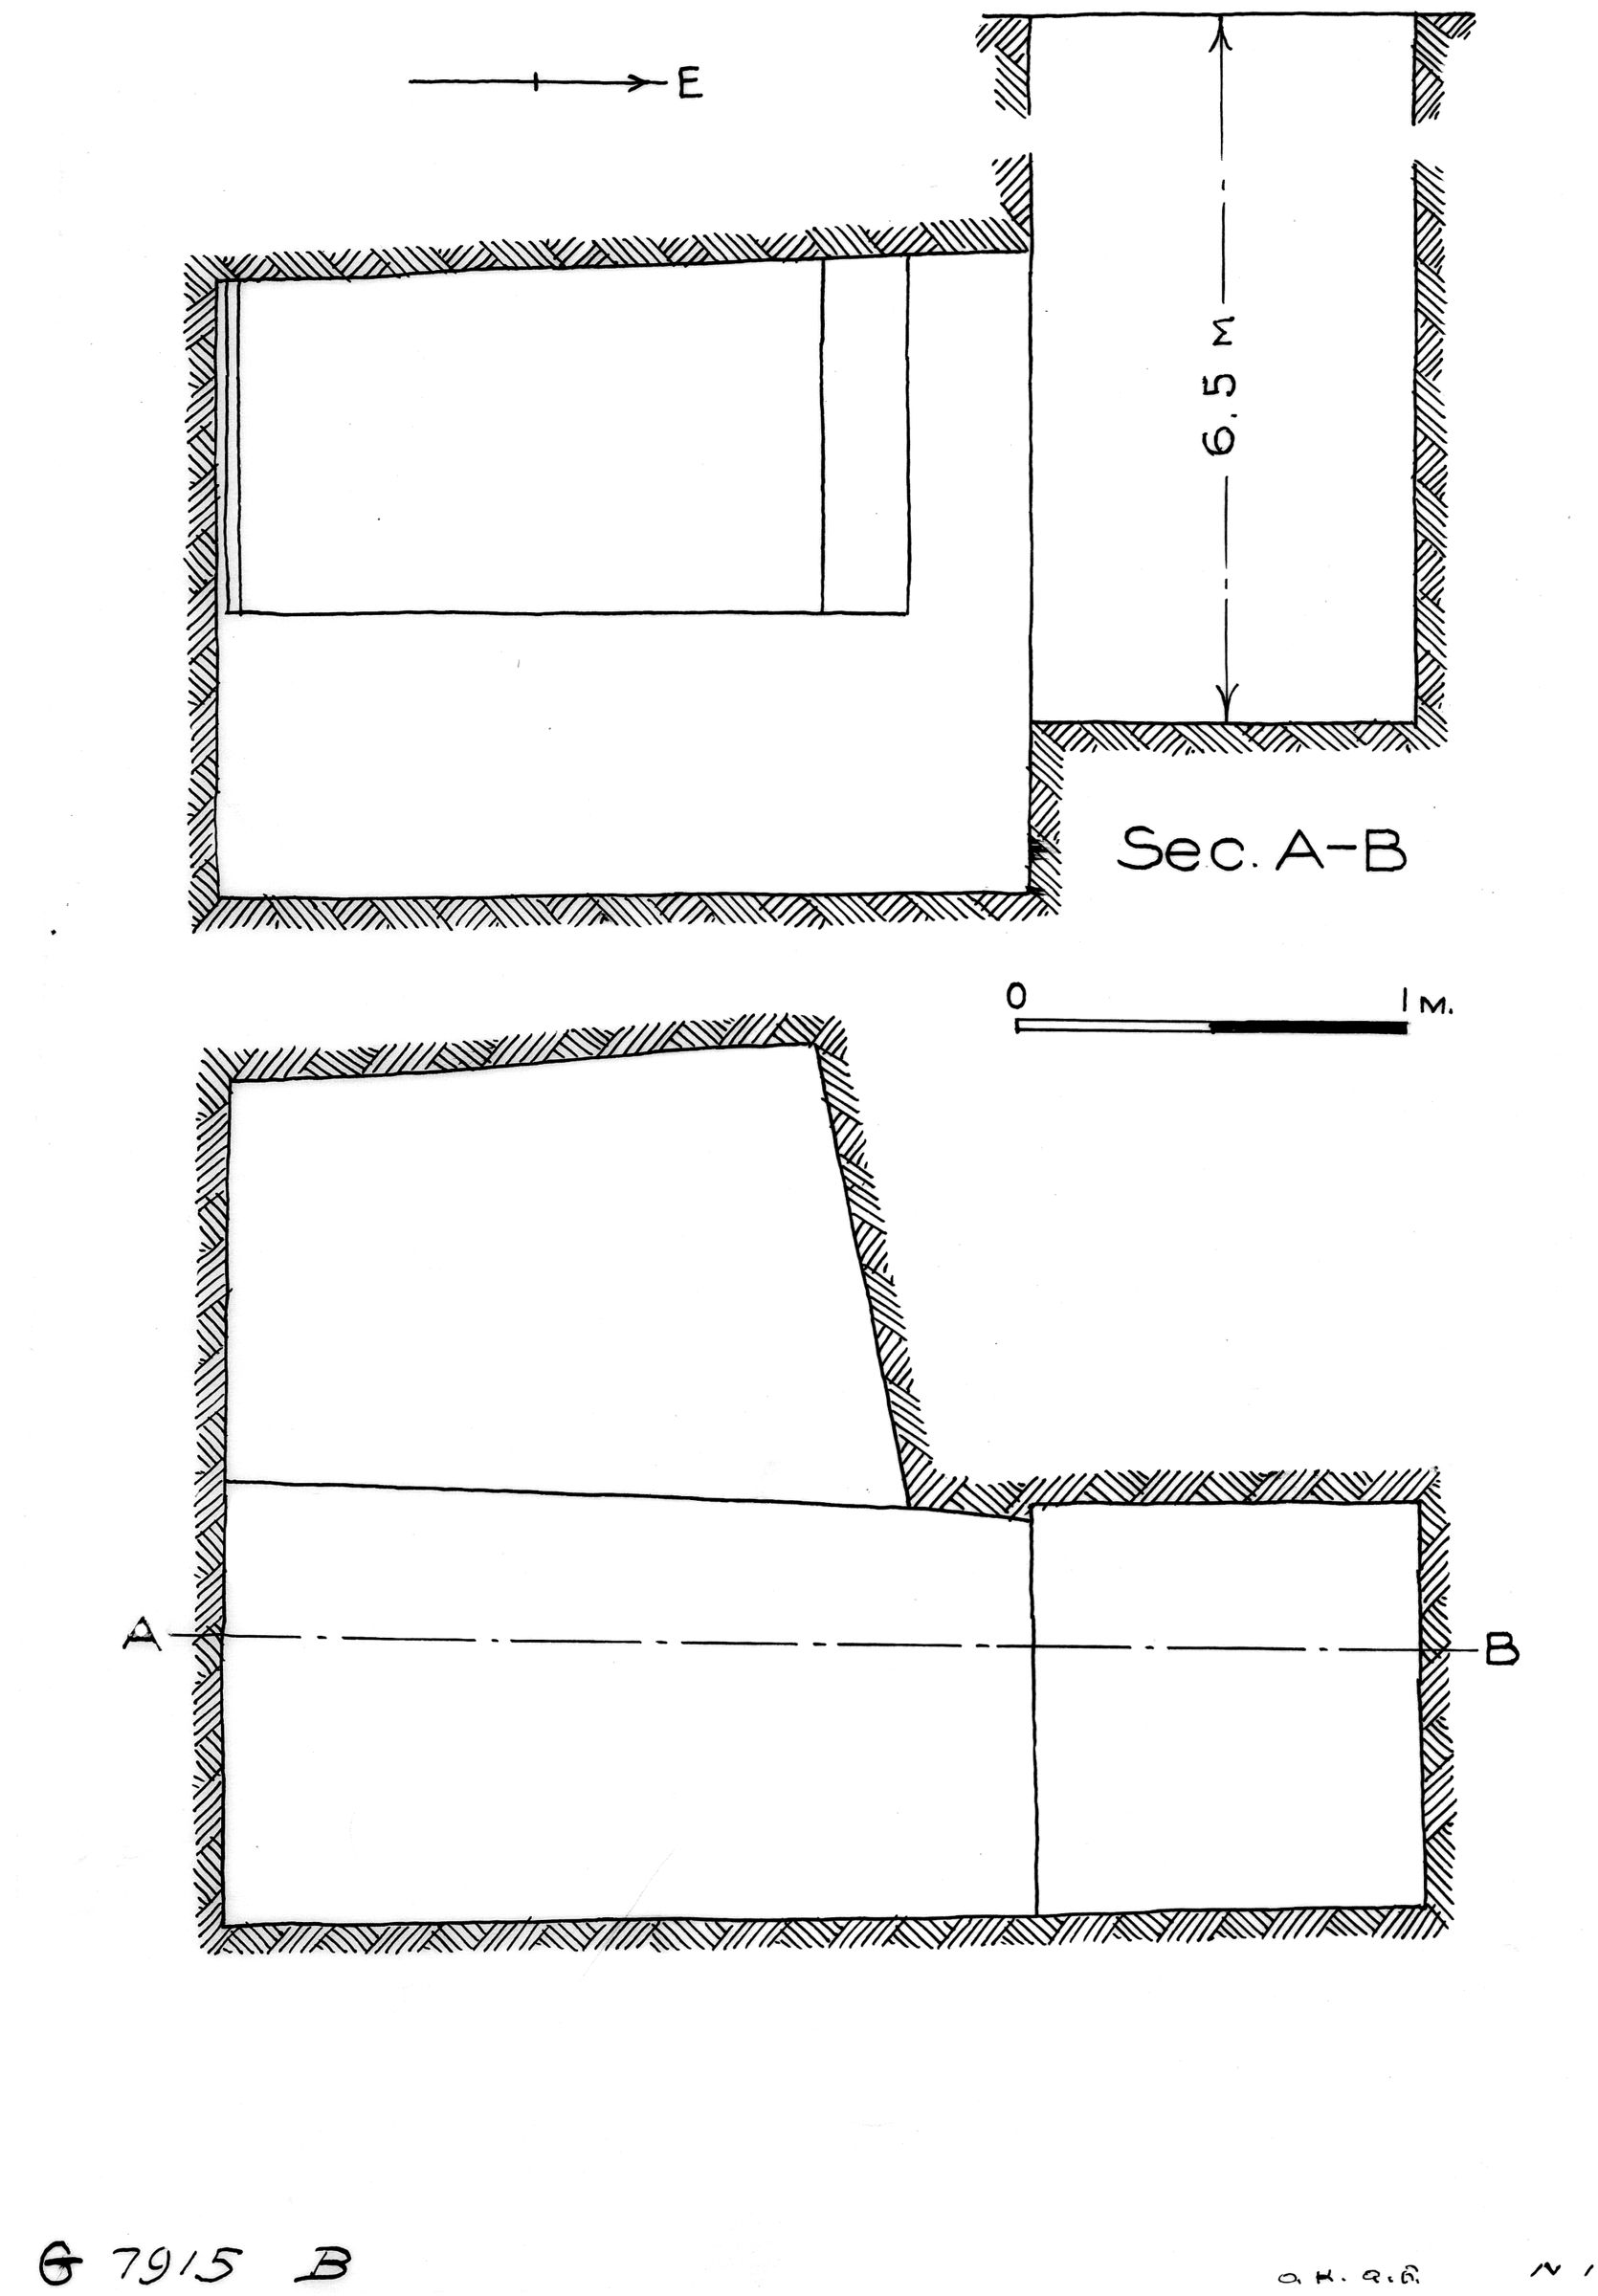 Maps and plans: G 7915, Shaft B